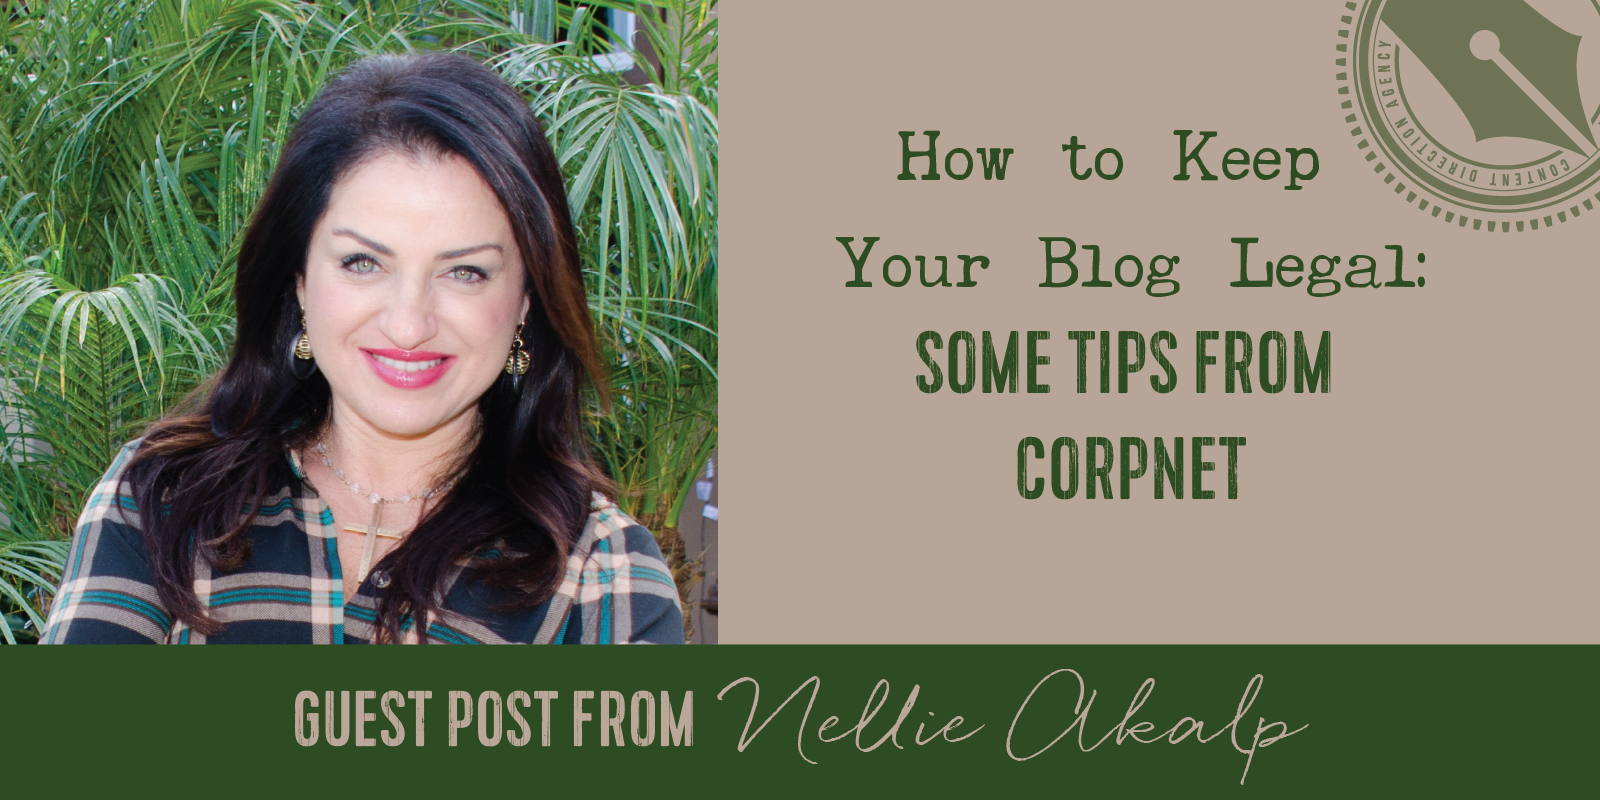 Keep your blog legal with these tips